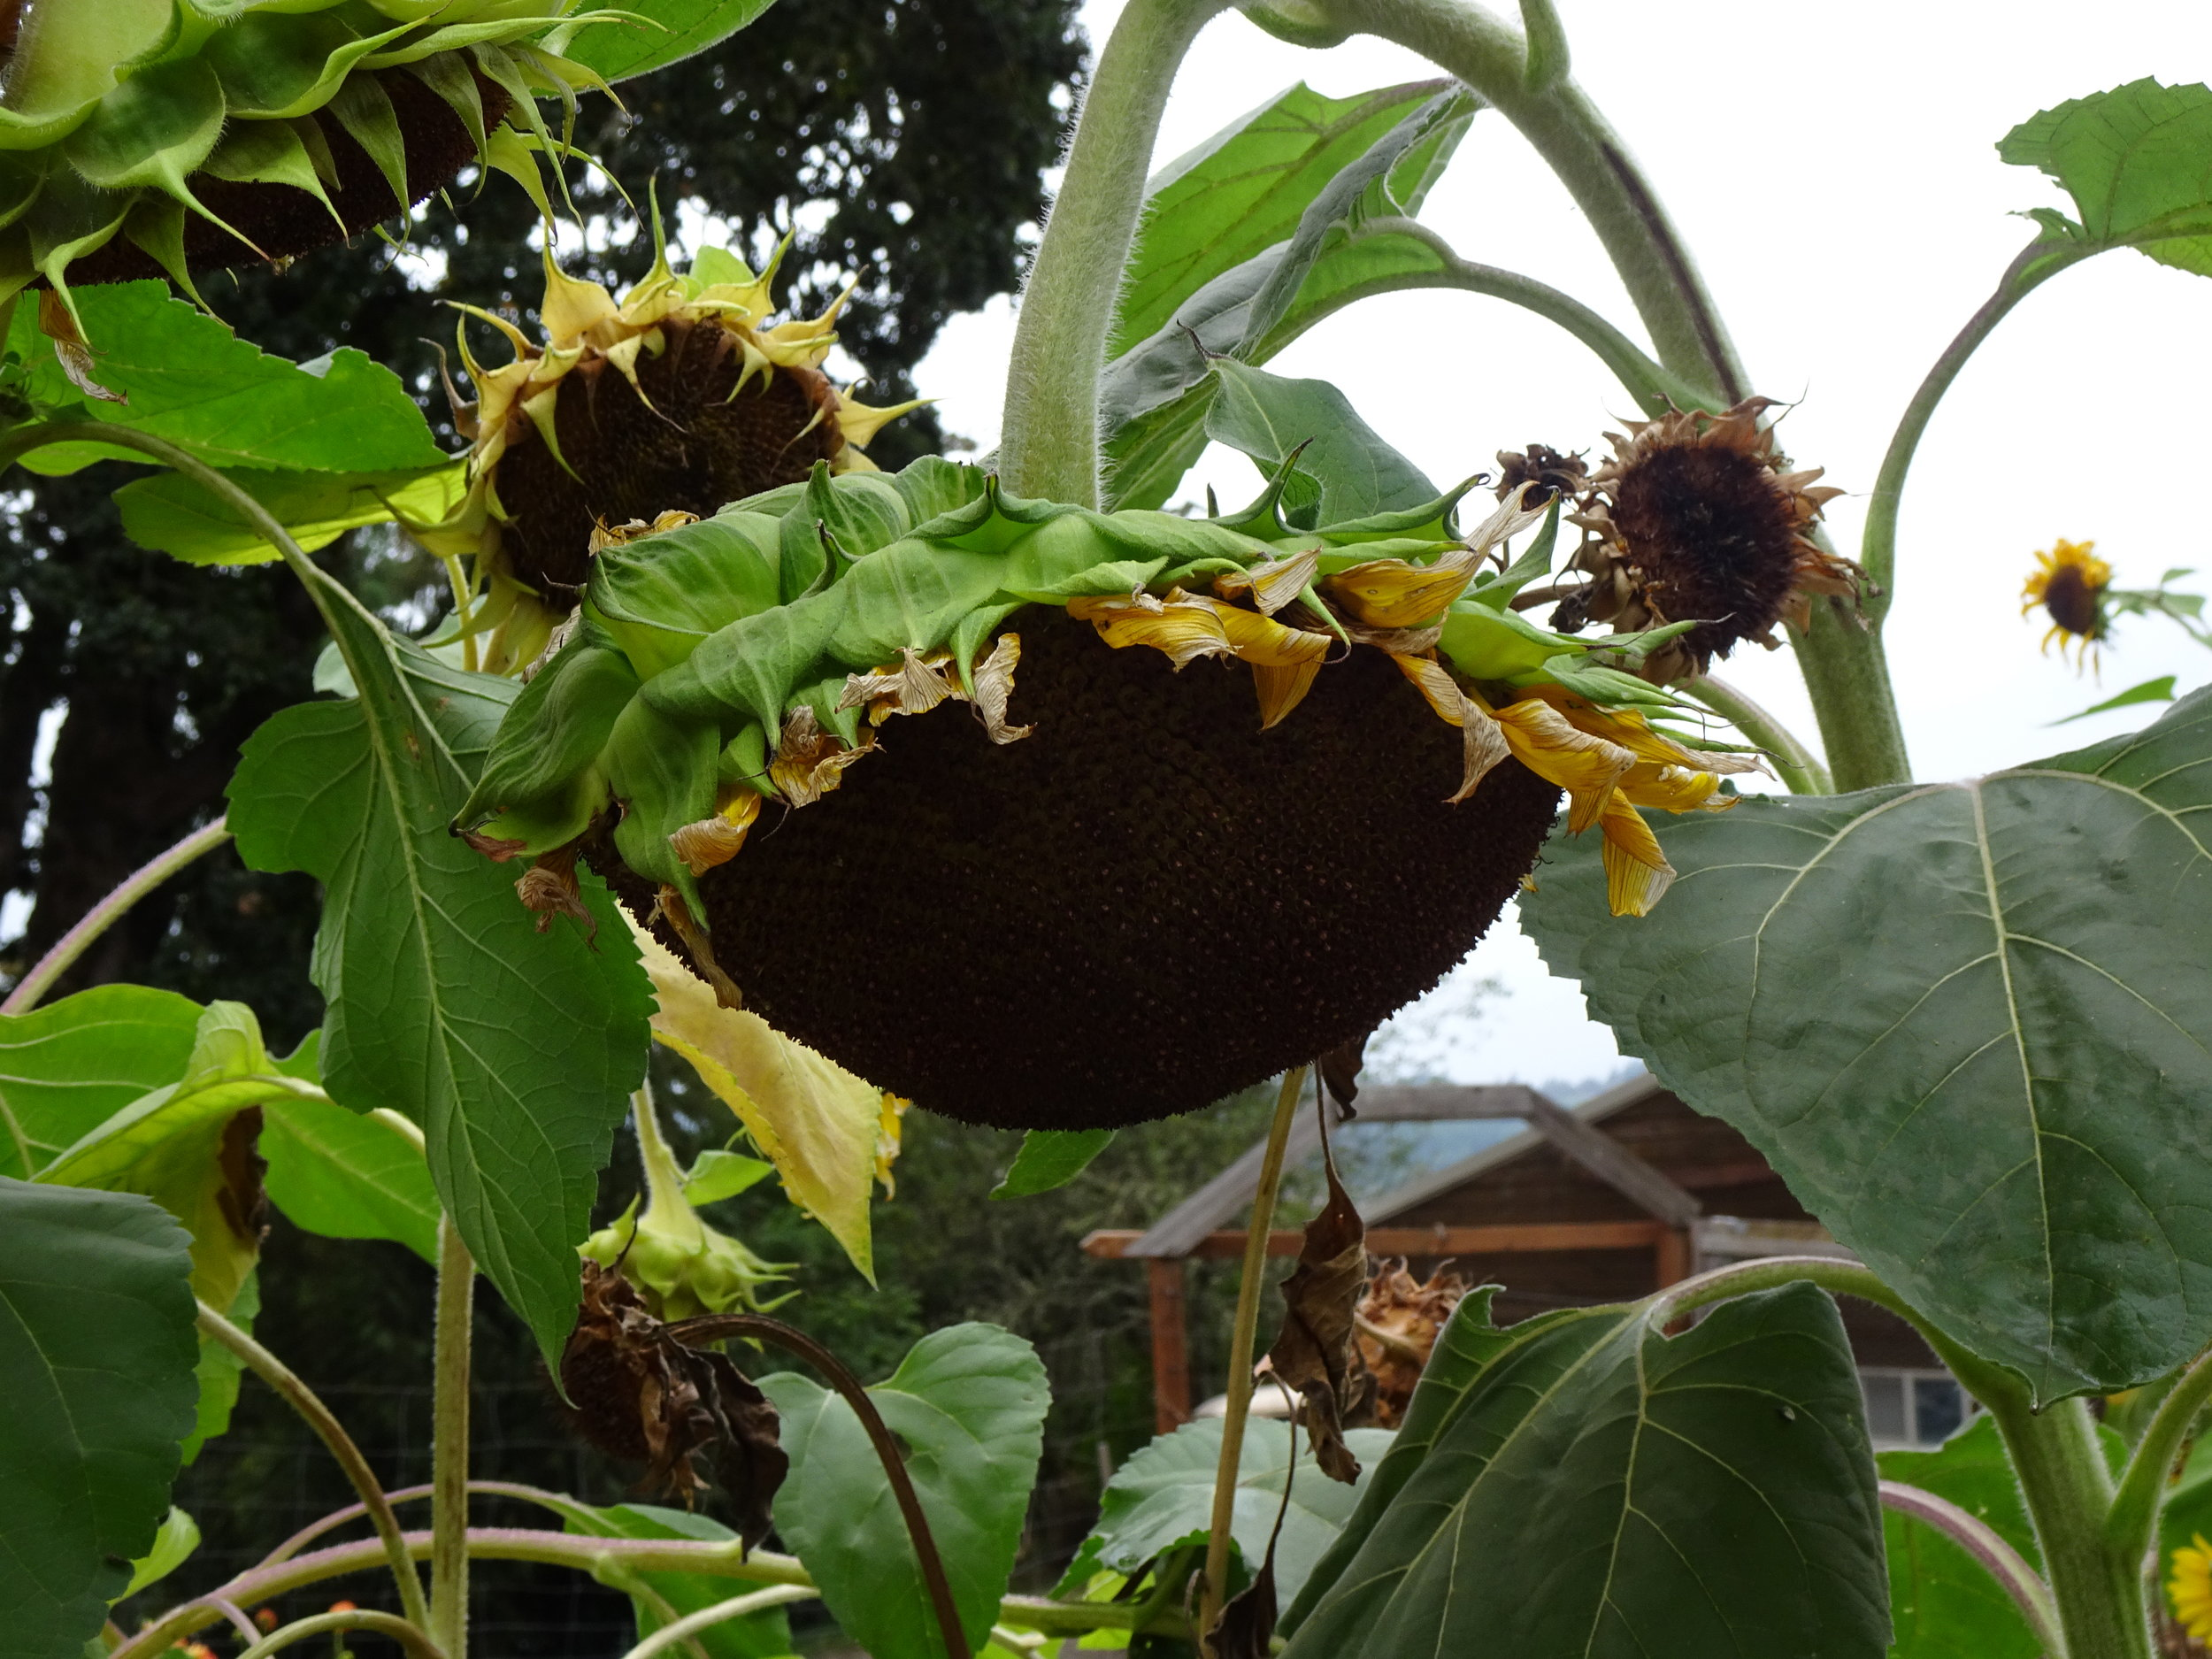 Sunflower: from full-faced beauty, to heavy seeded, bent and ready to go back to earth. Photo by Anne Richardson 9-29-18, Yamhill, OR